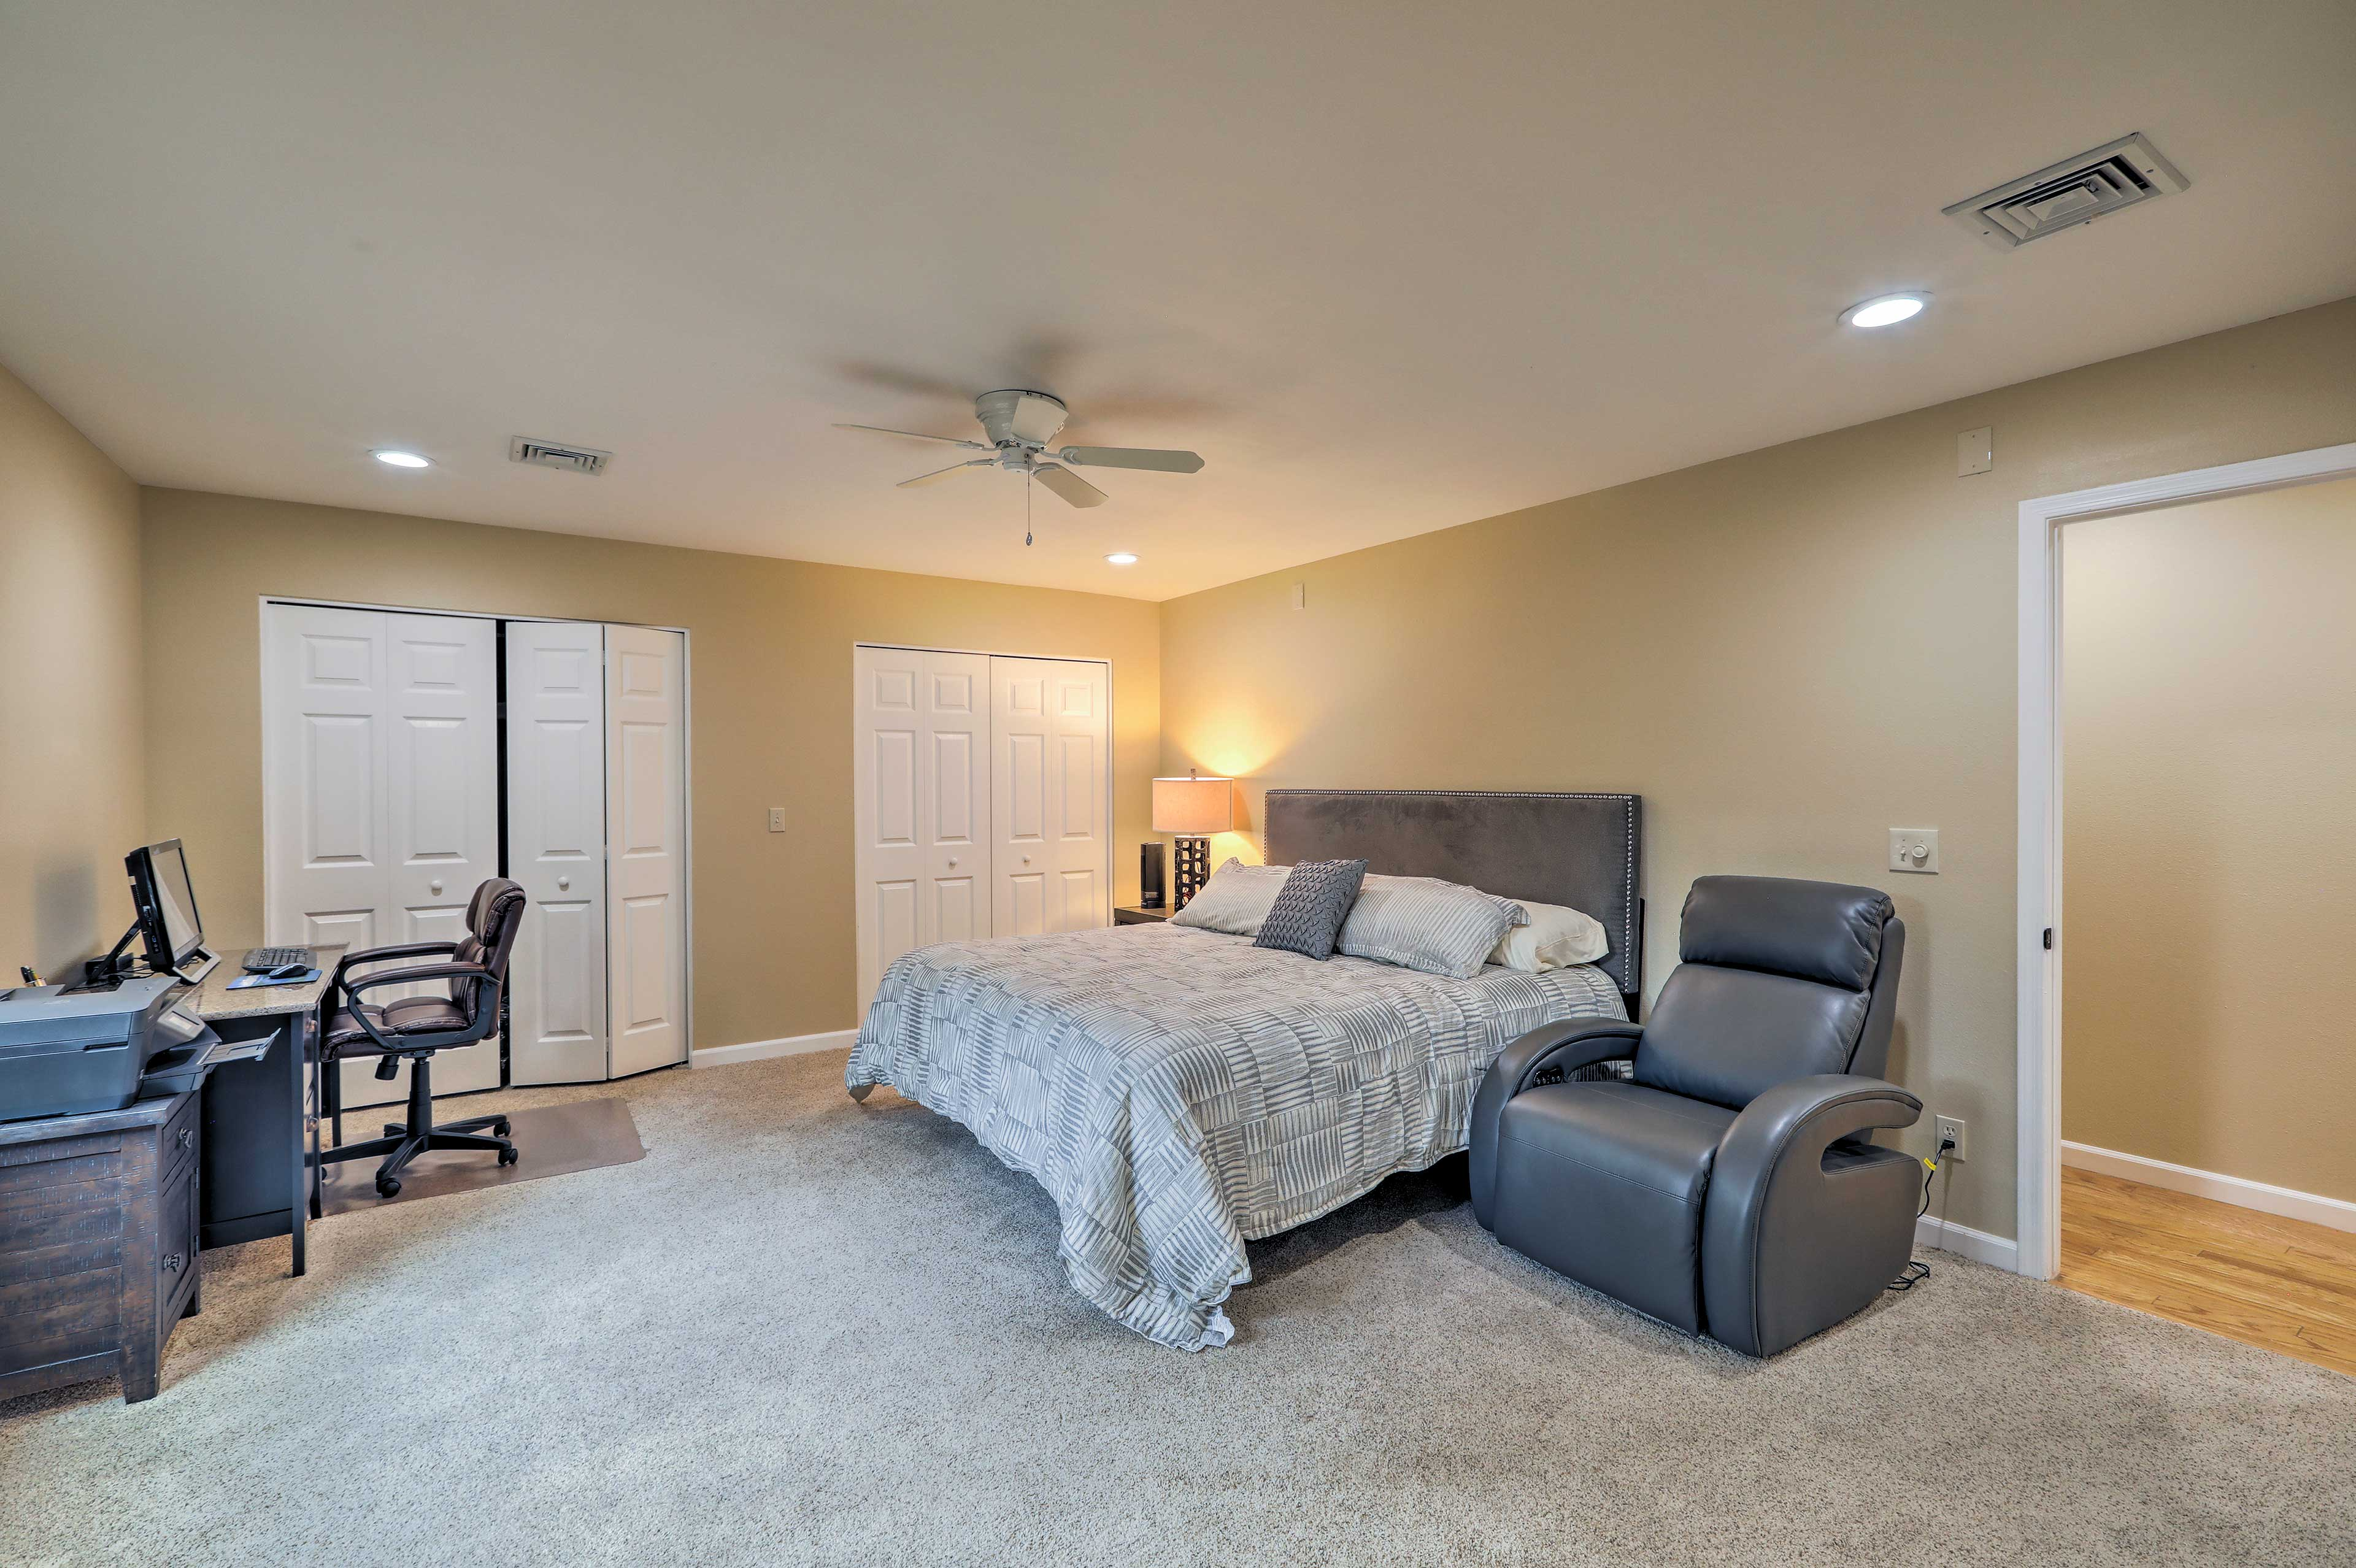 Choose from one of 4 bedrooms for a sound night's sleep.